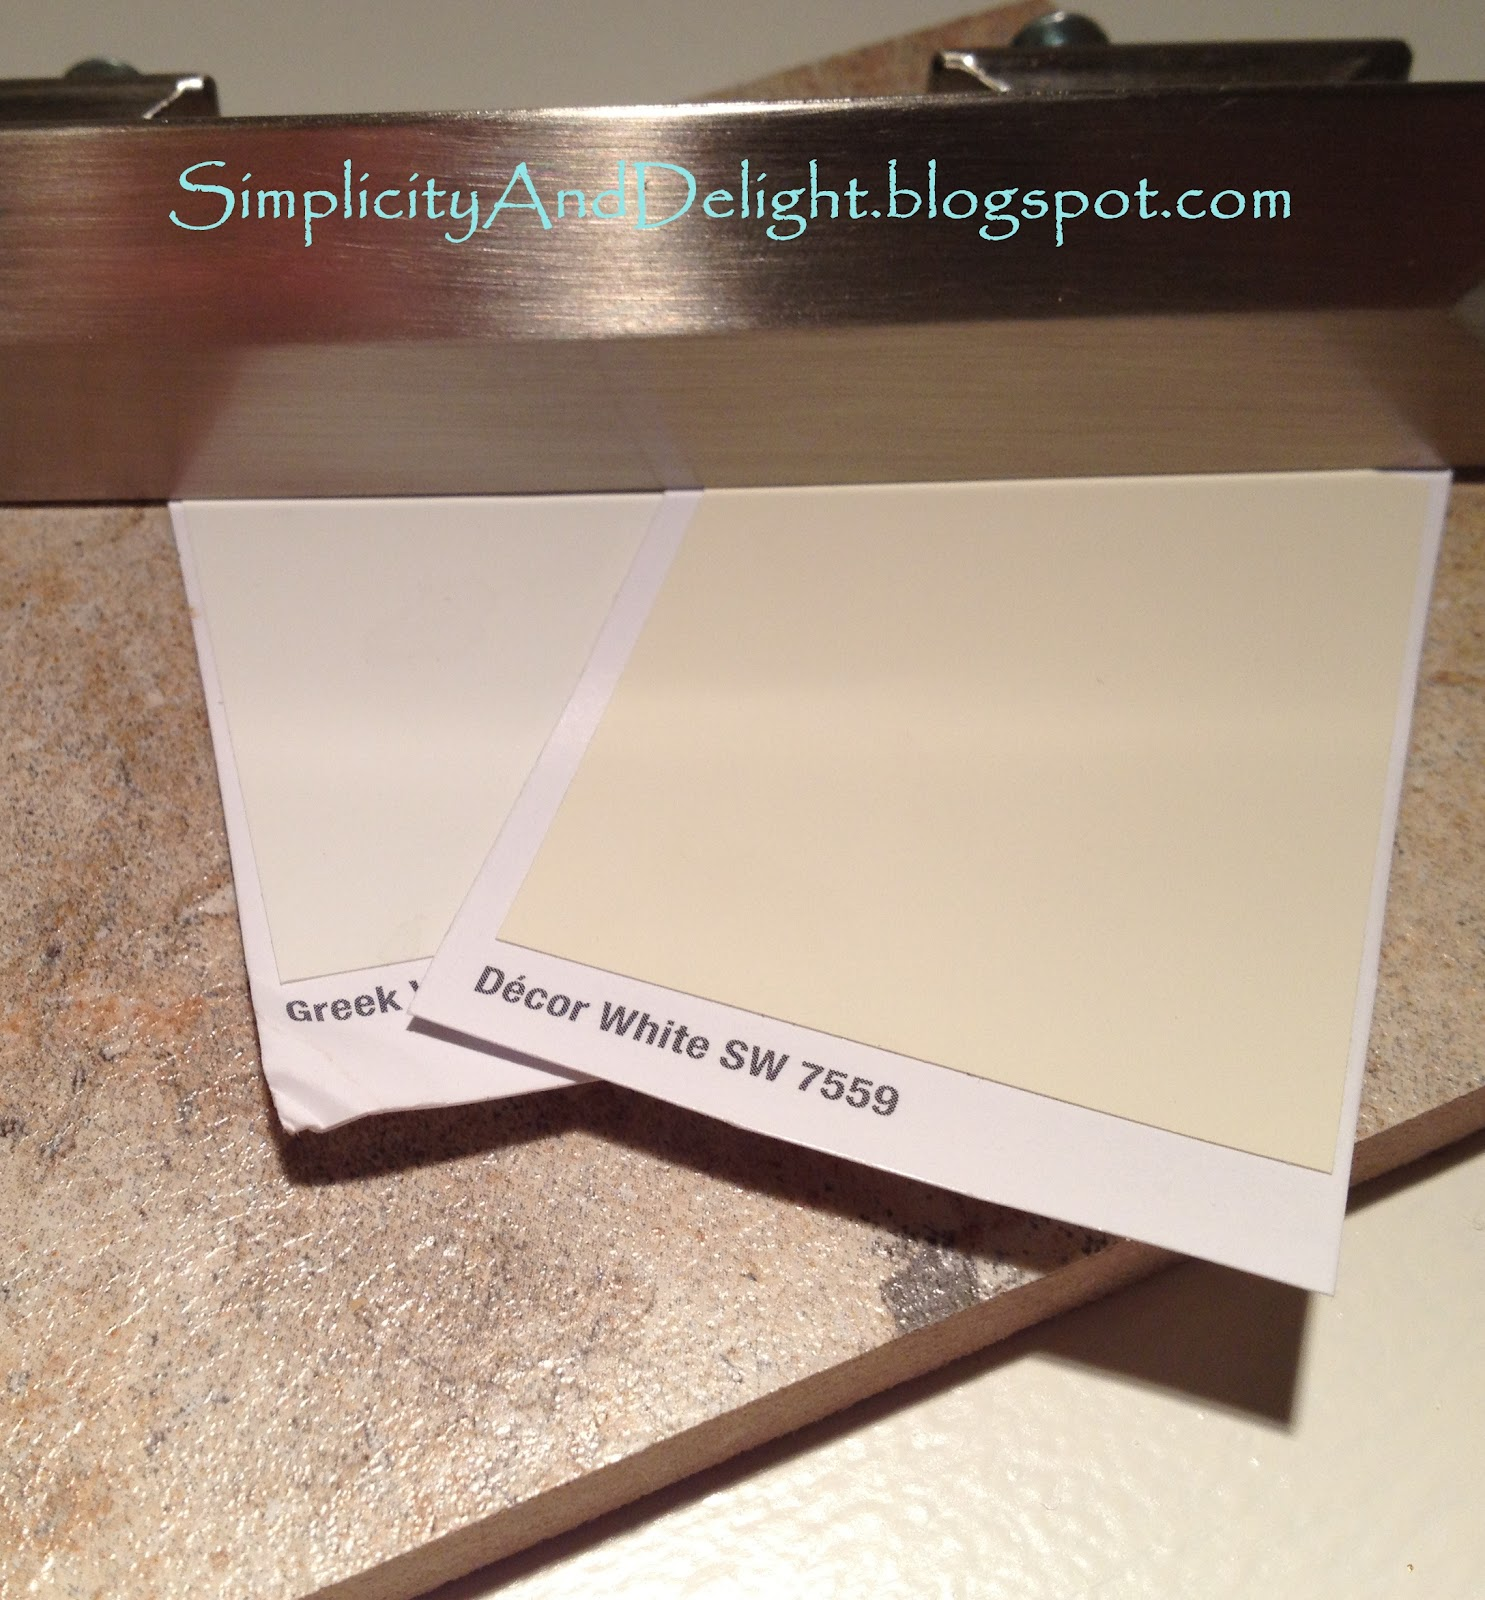 Simplicity and Delight: Kitchen Refresh - Part 1